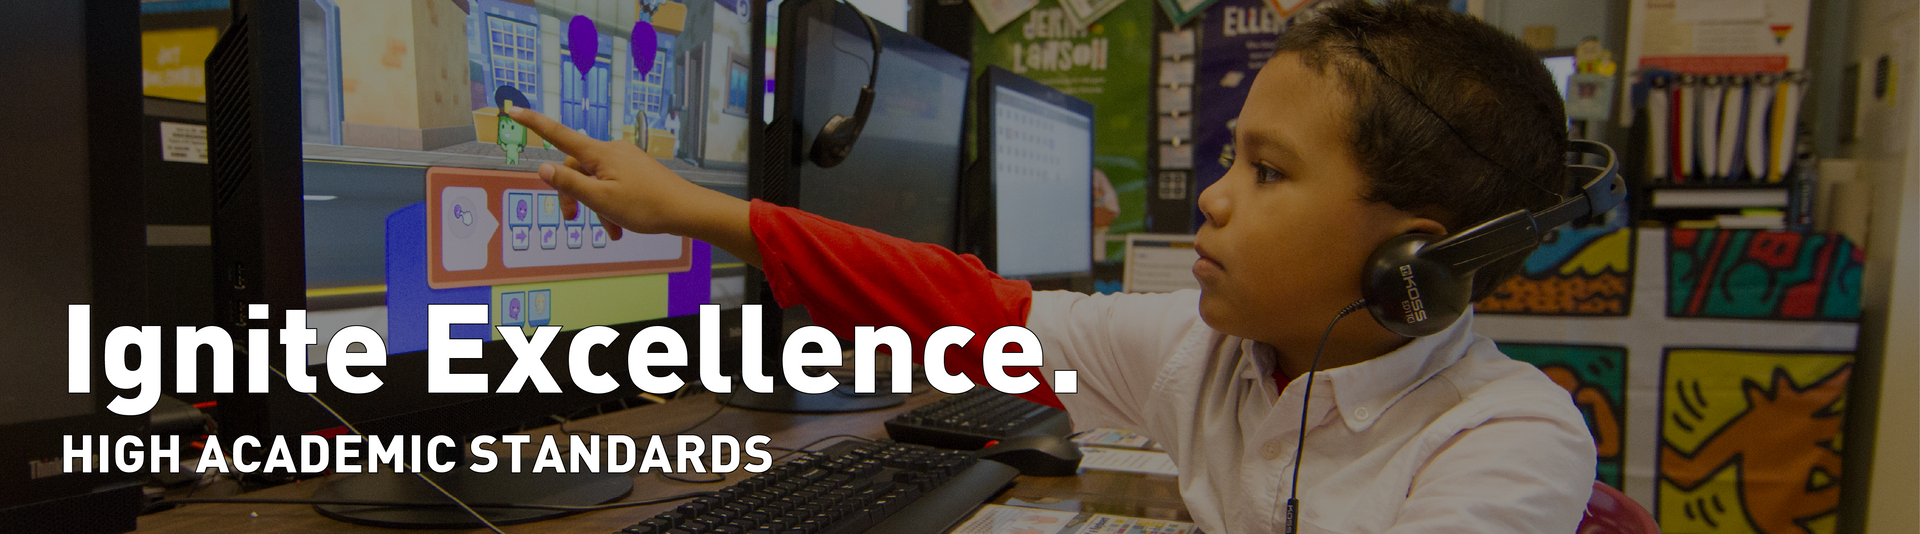 Ignite Excellence: high academic standards